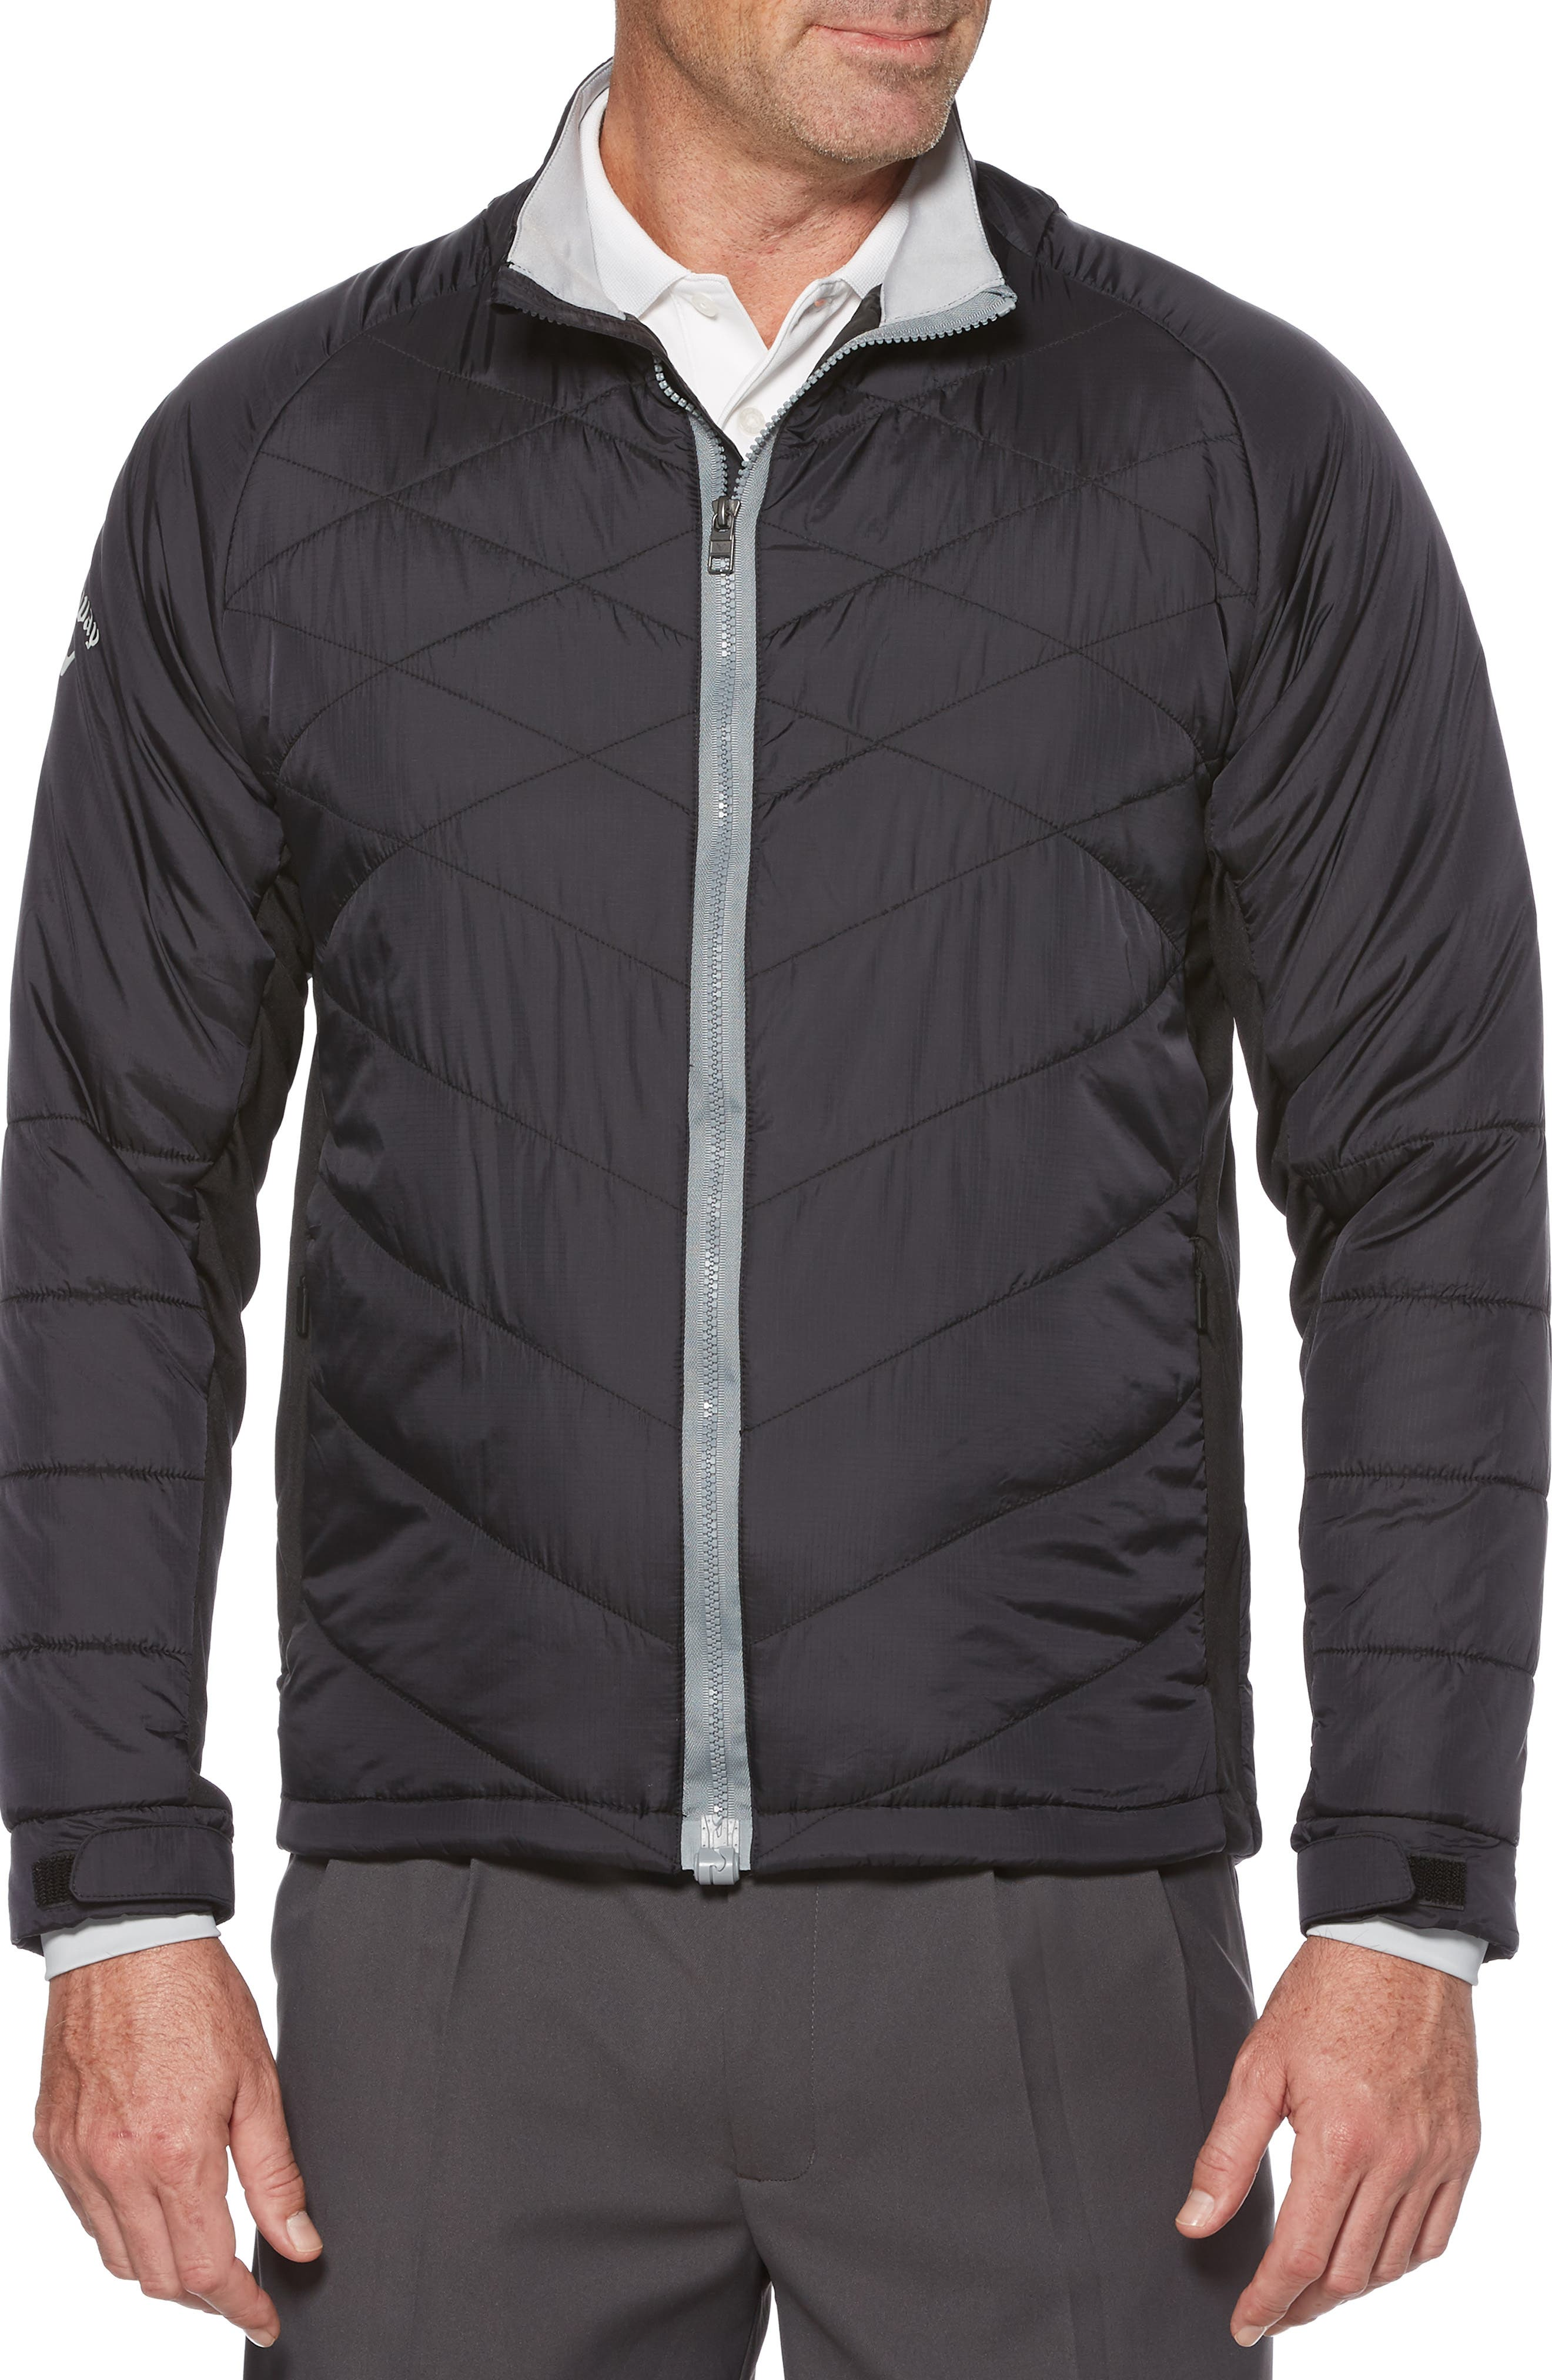 Performance Puffer Jacket,                         Main,                         color, 002